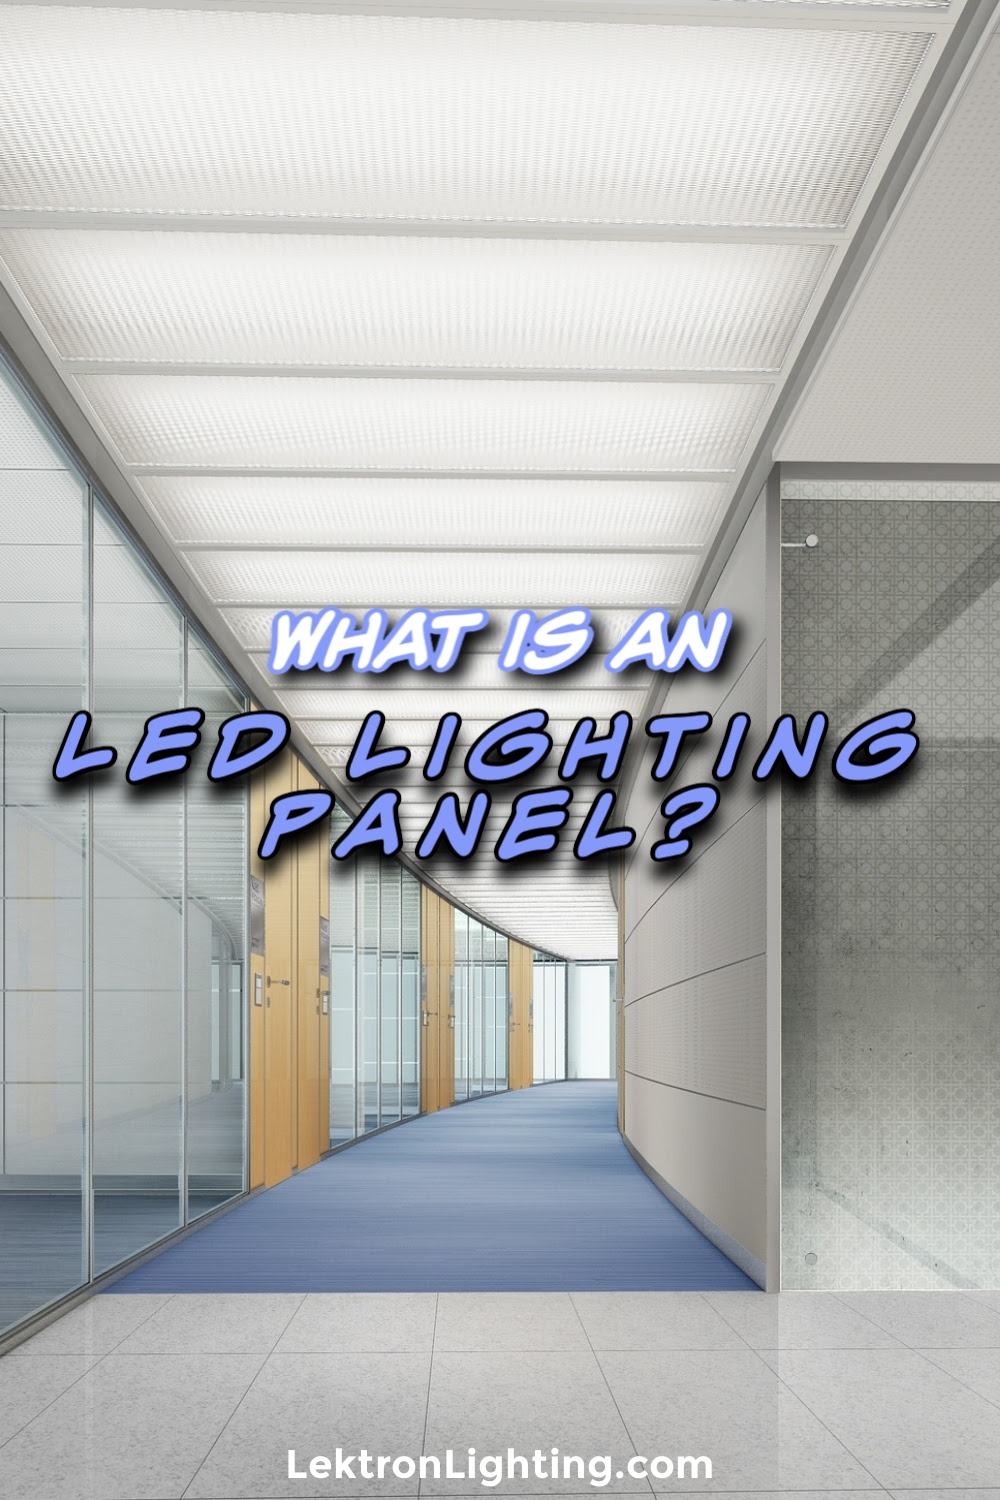 What is an LED lighting panel and how could it benefit your business so that a lighting retrofitting makes sense as well as save you money?